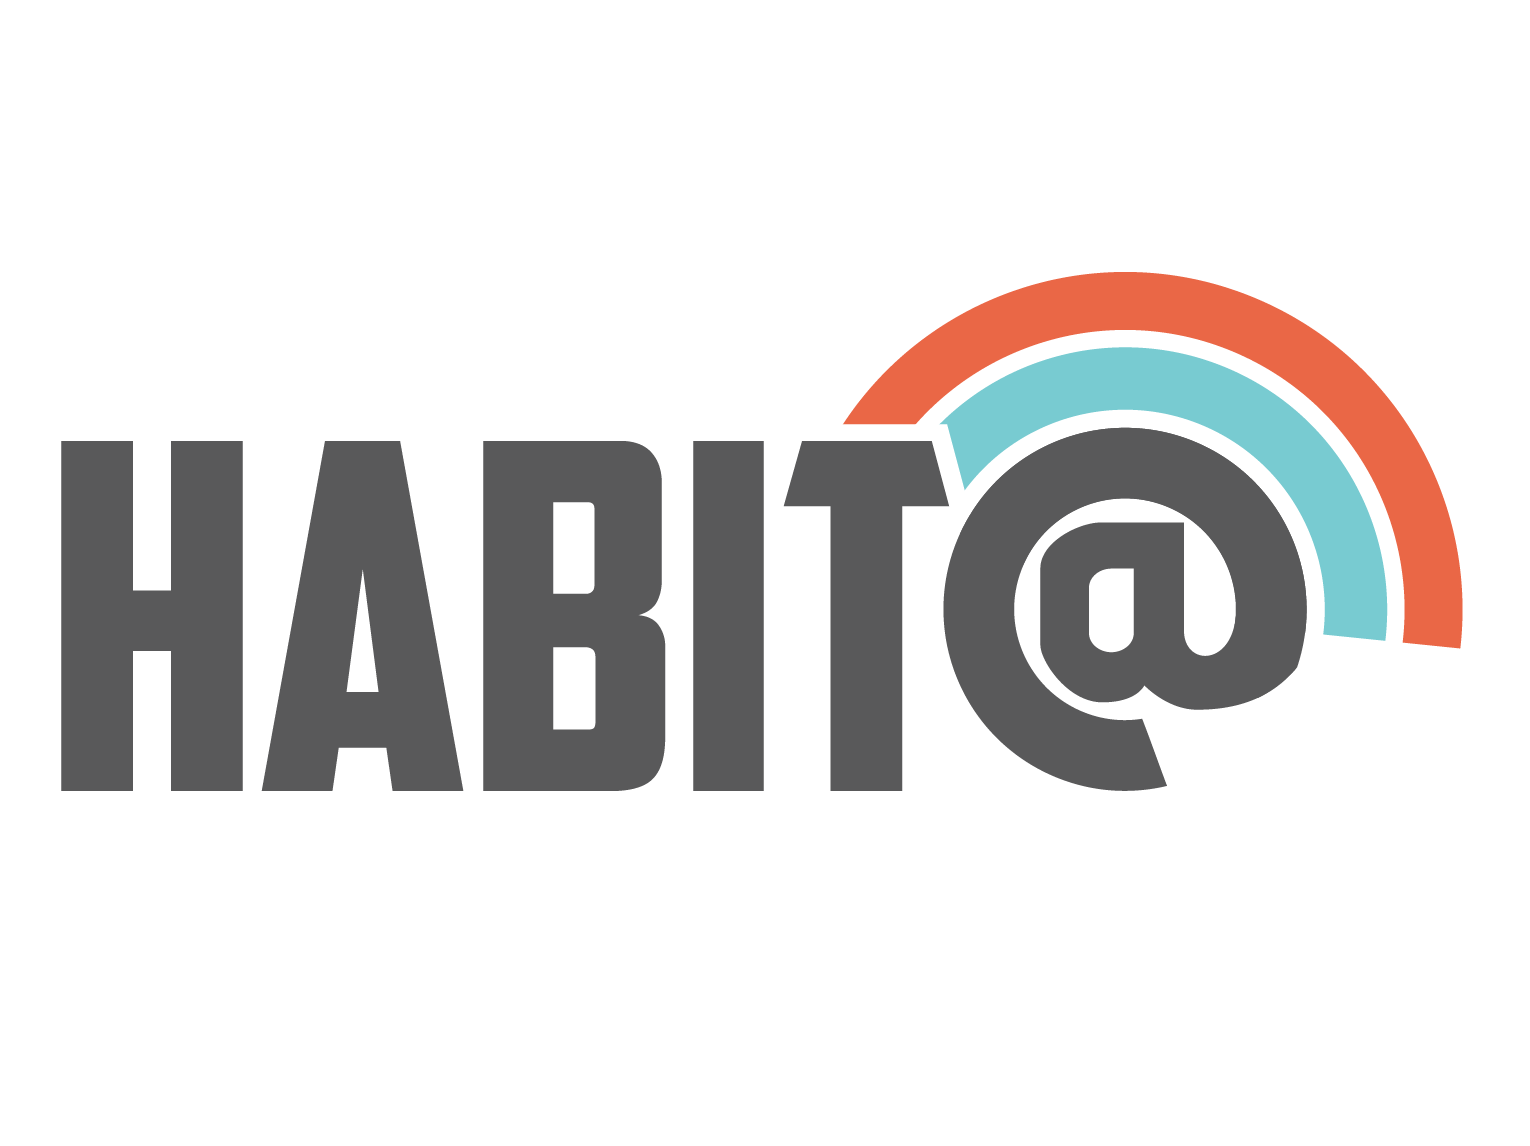 Thumbnail image for 'Habit@' project